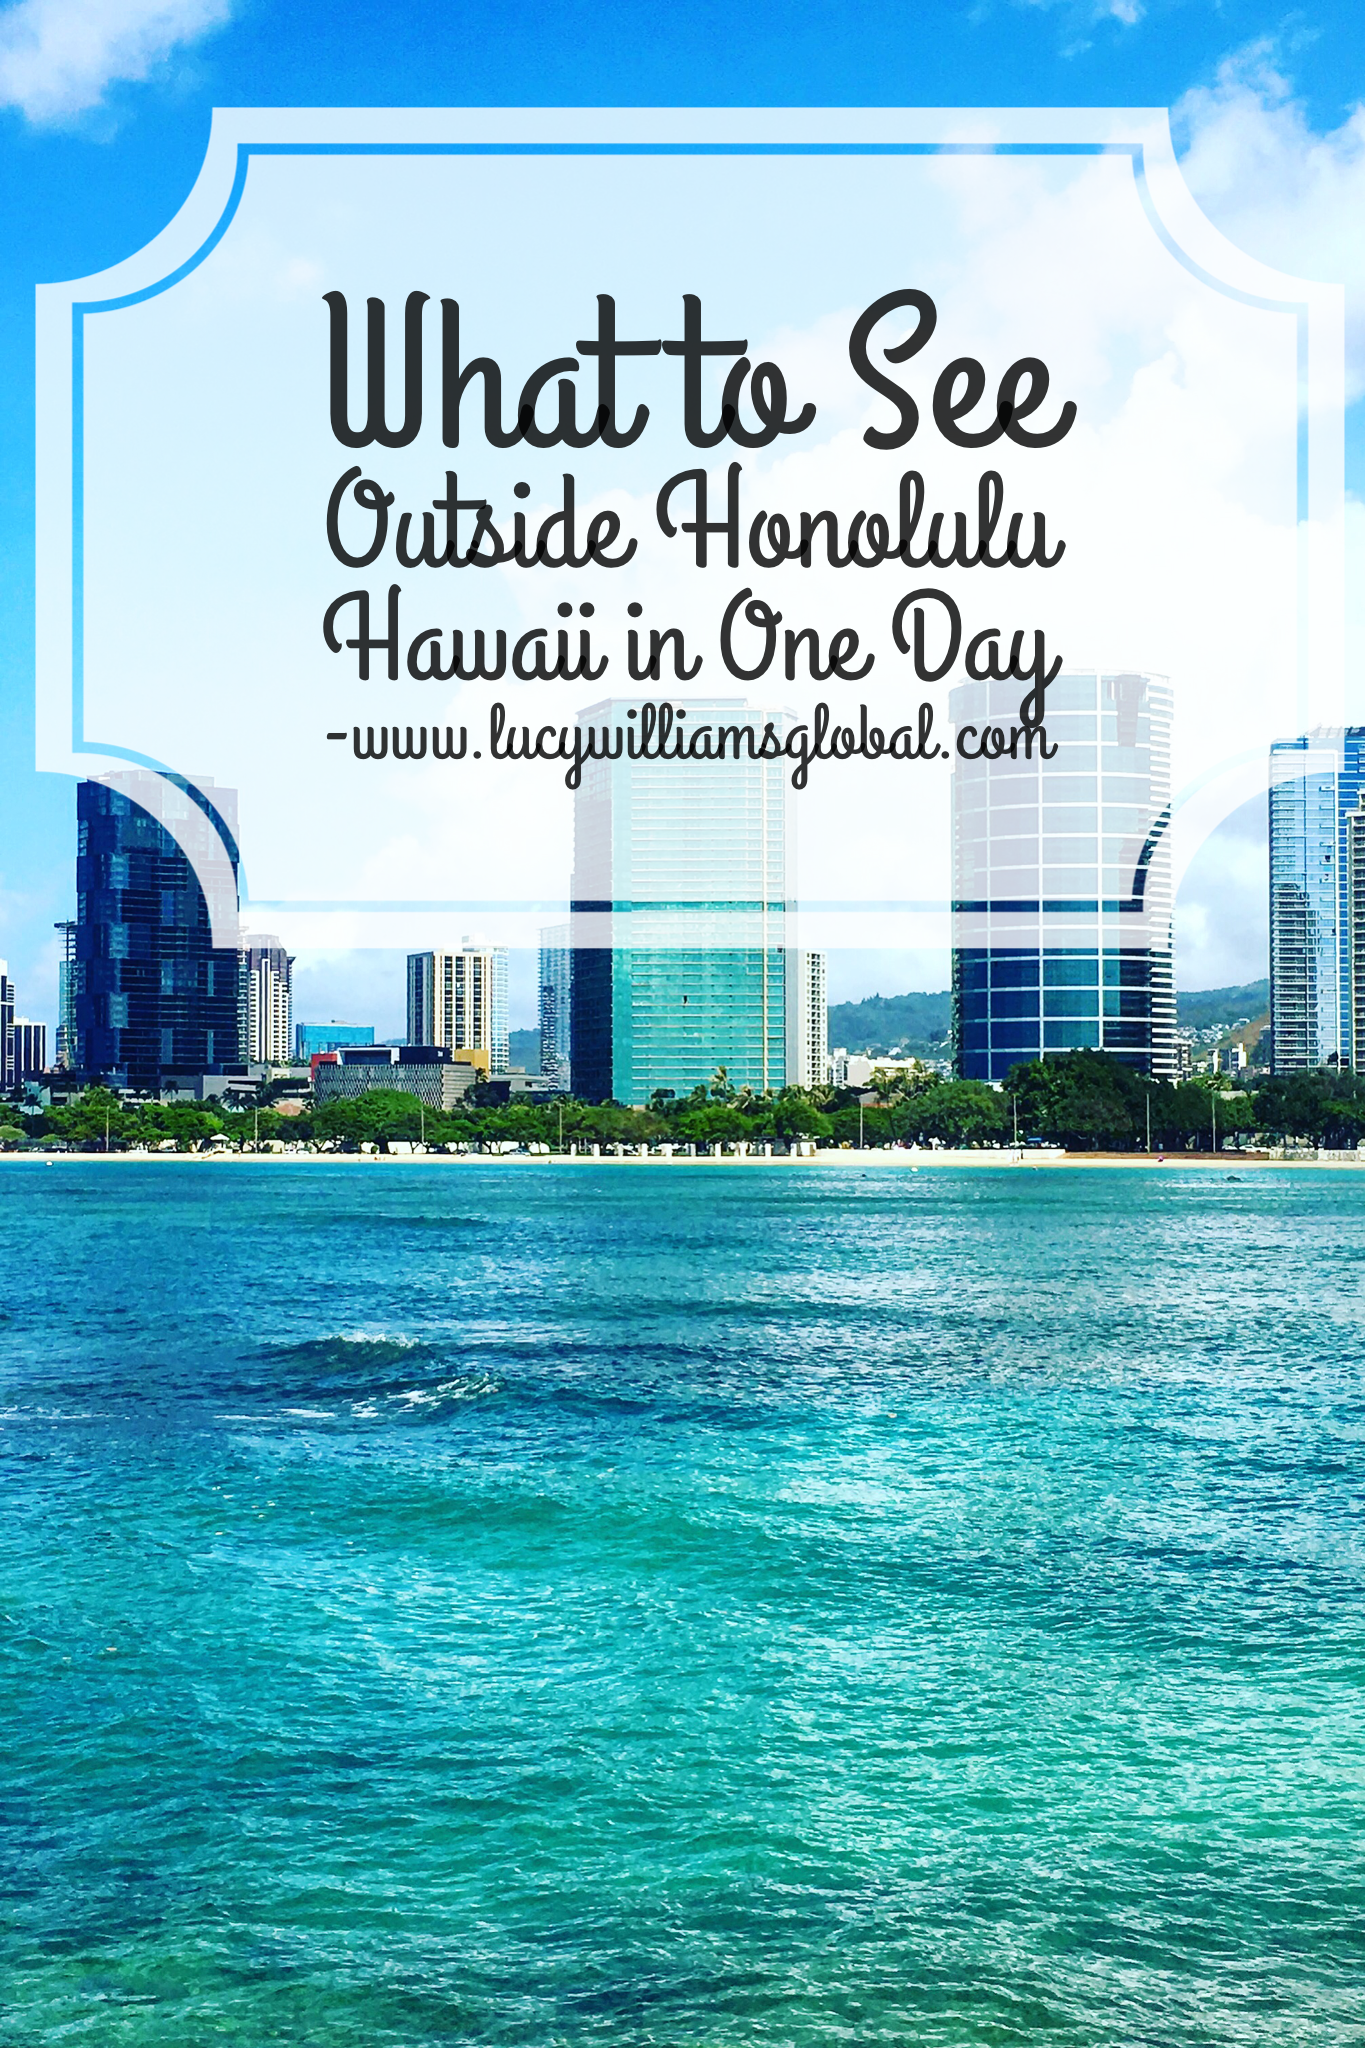 What to See Outside of Honolulu Hawaii in One Day